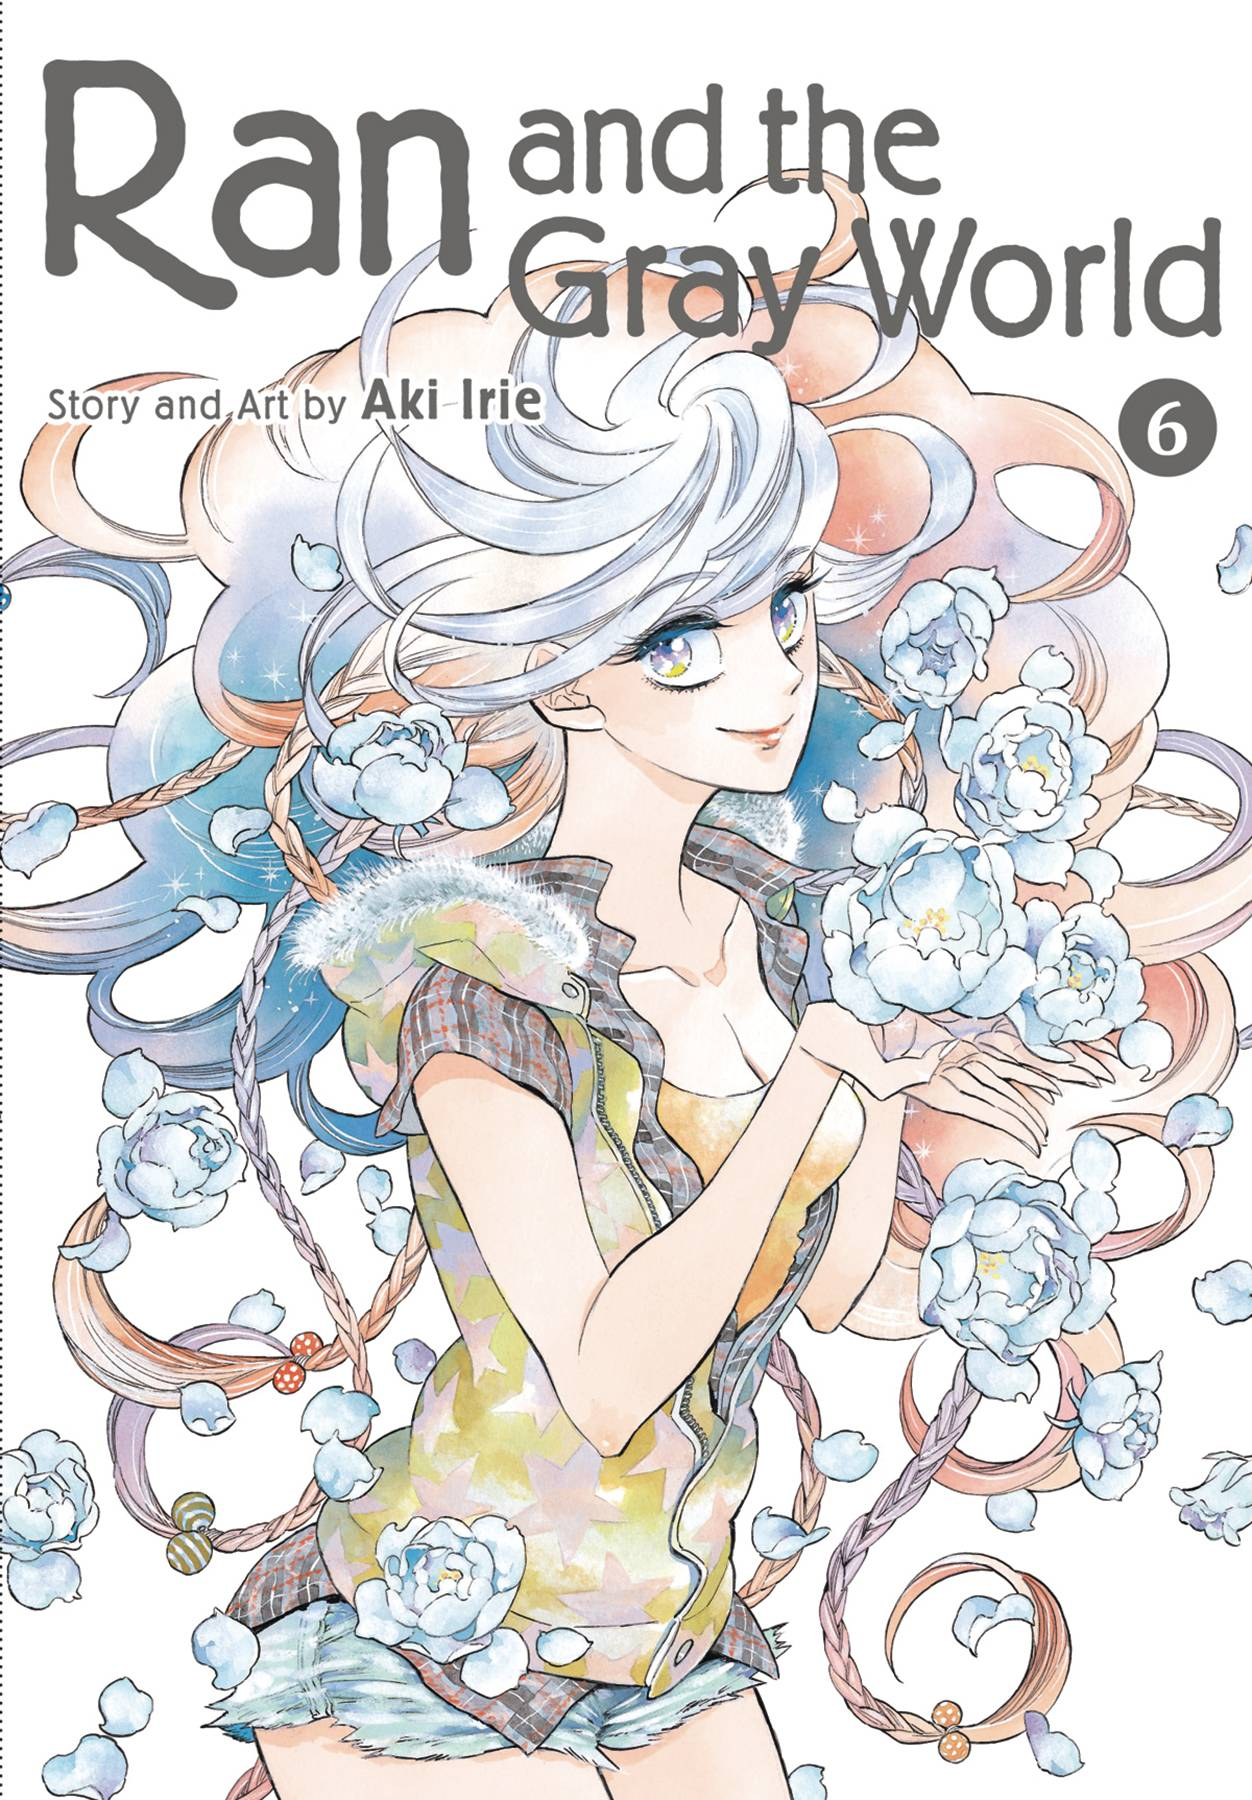 RAN & GRAY WORLD GN VOL 06